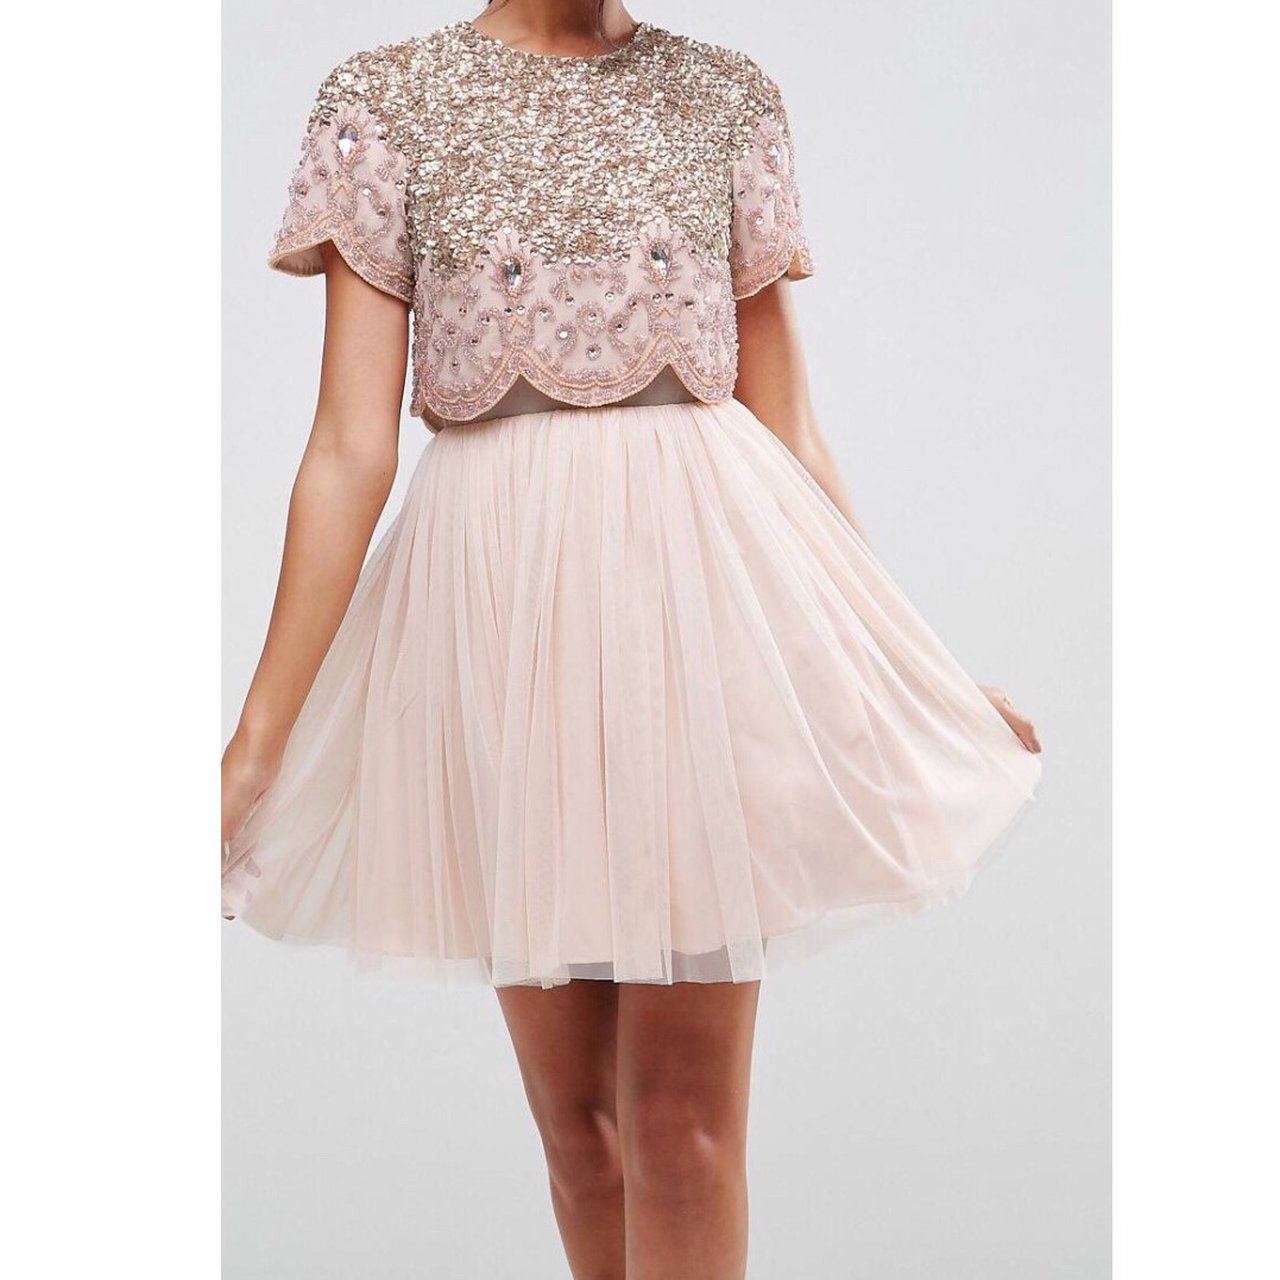 fb7355cb24a7 ASOS heavily embellished tulle mini dress. Wore once , very - Depop